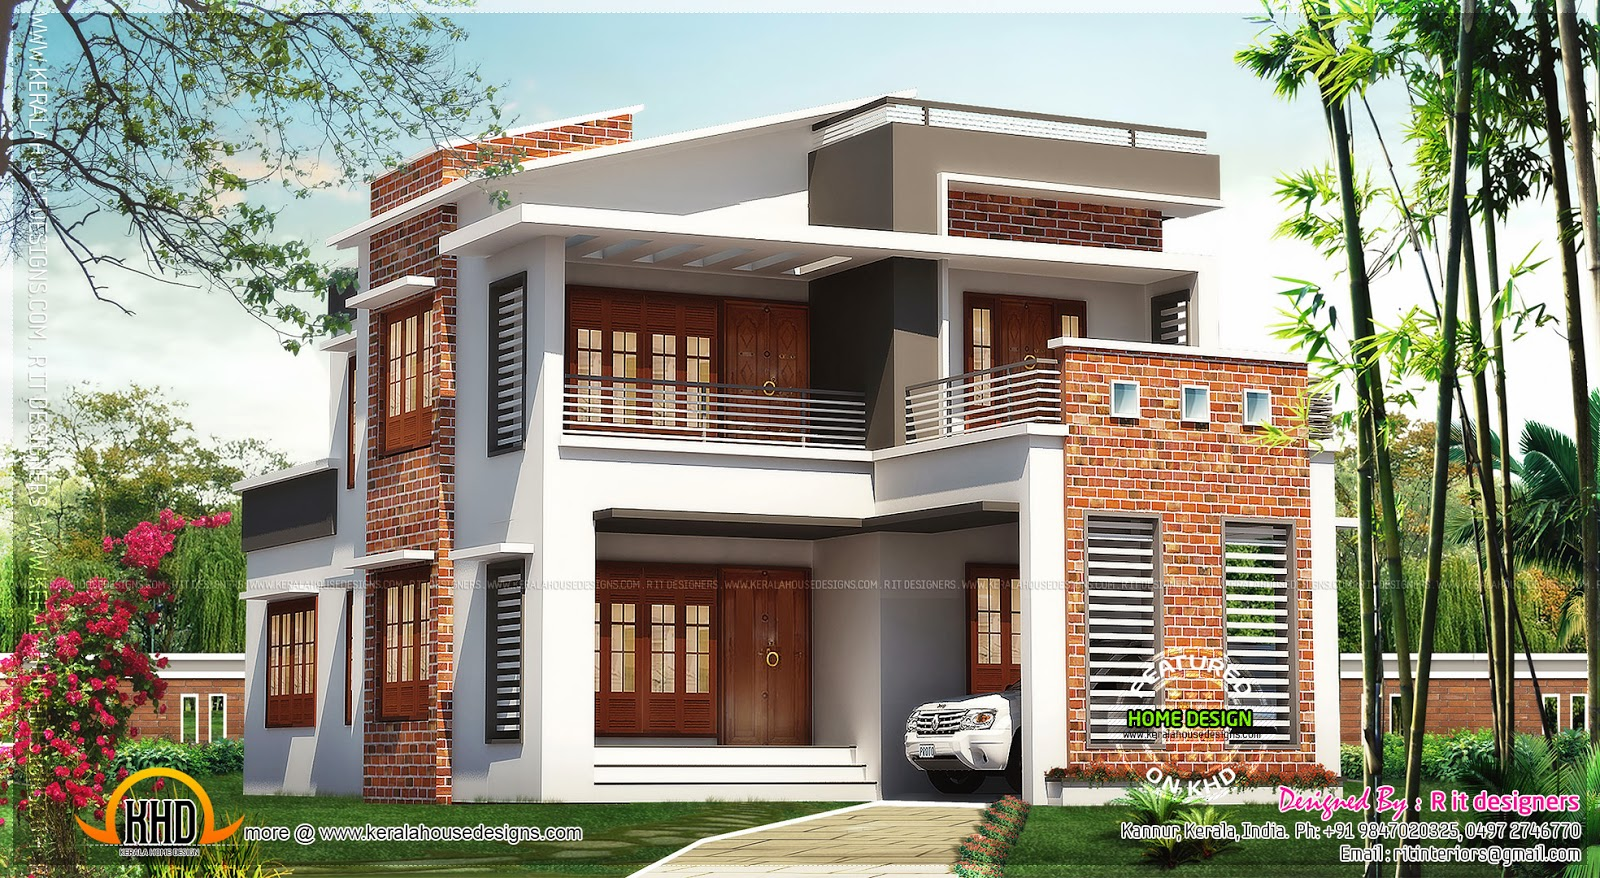 Brick mix house exterior design indian house plans for Indian house exterior design pictures